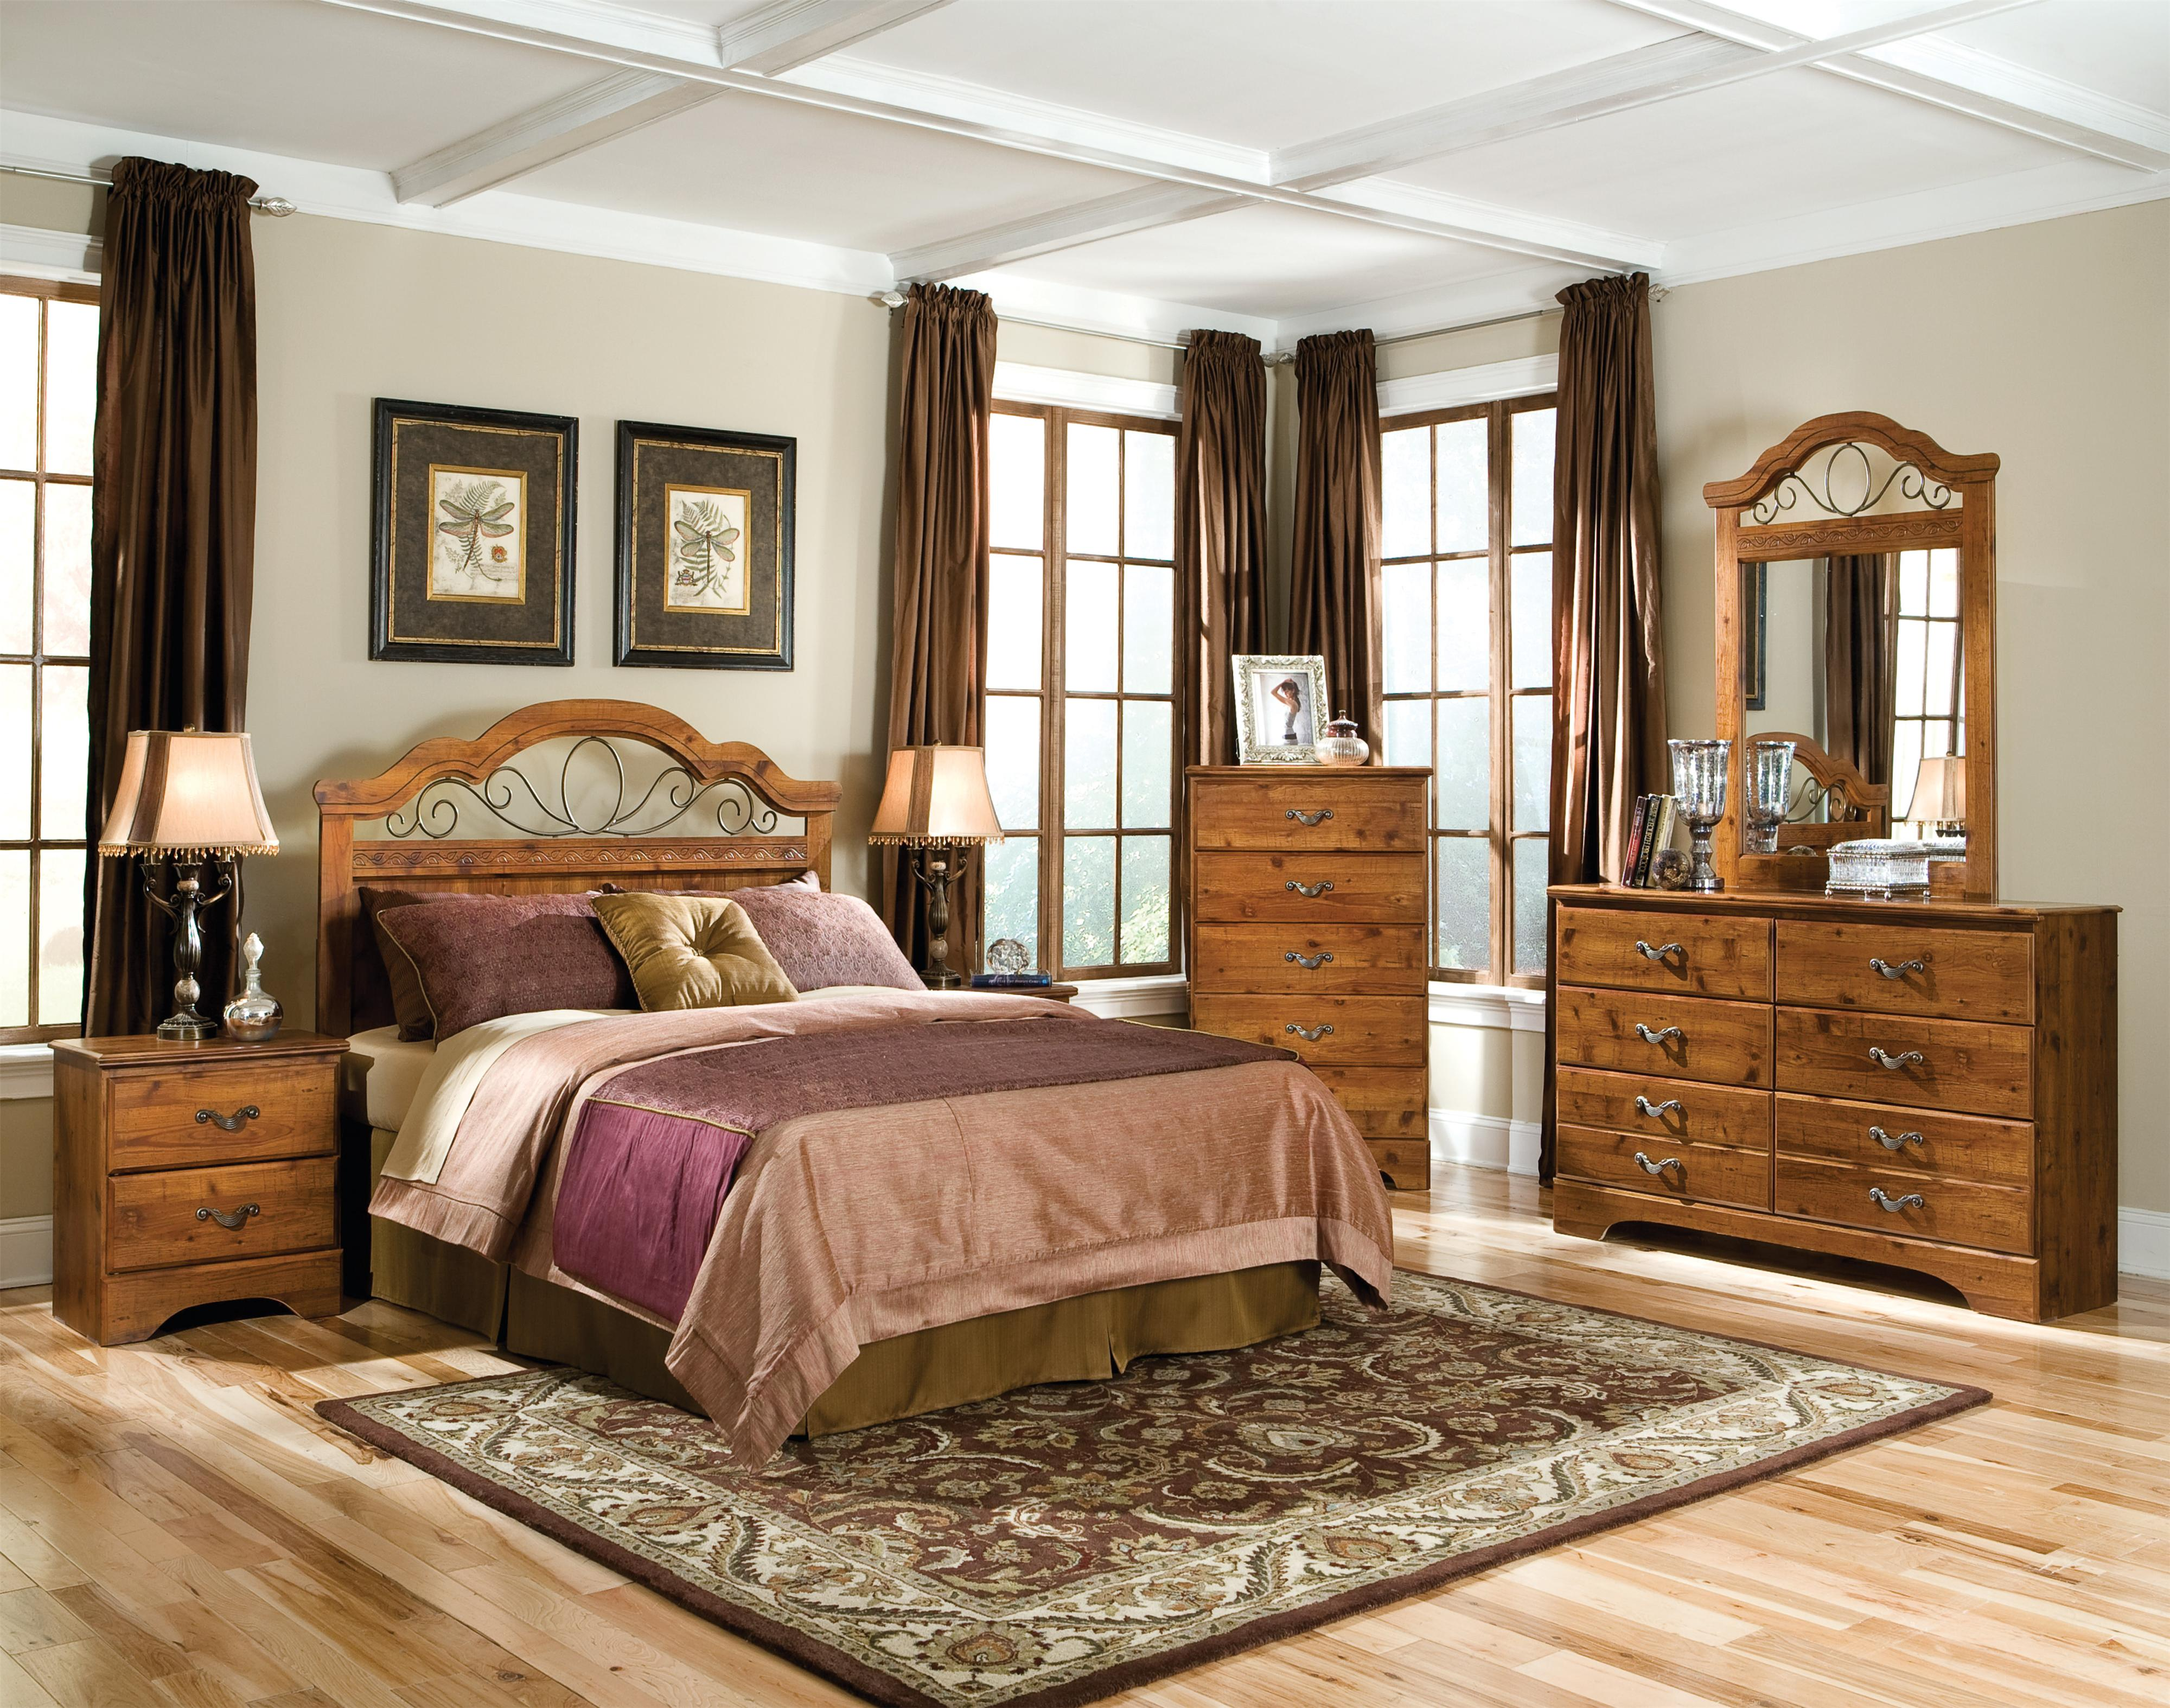 Standard Furniture Hester Heights Full/Queen Bedroom Group - Item Number: 61100 F Q Bedroom Group 1